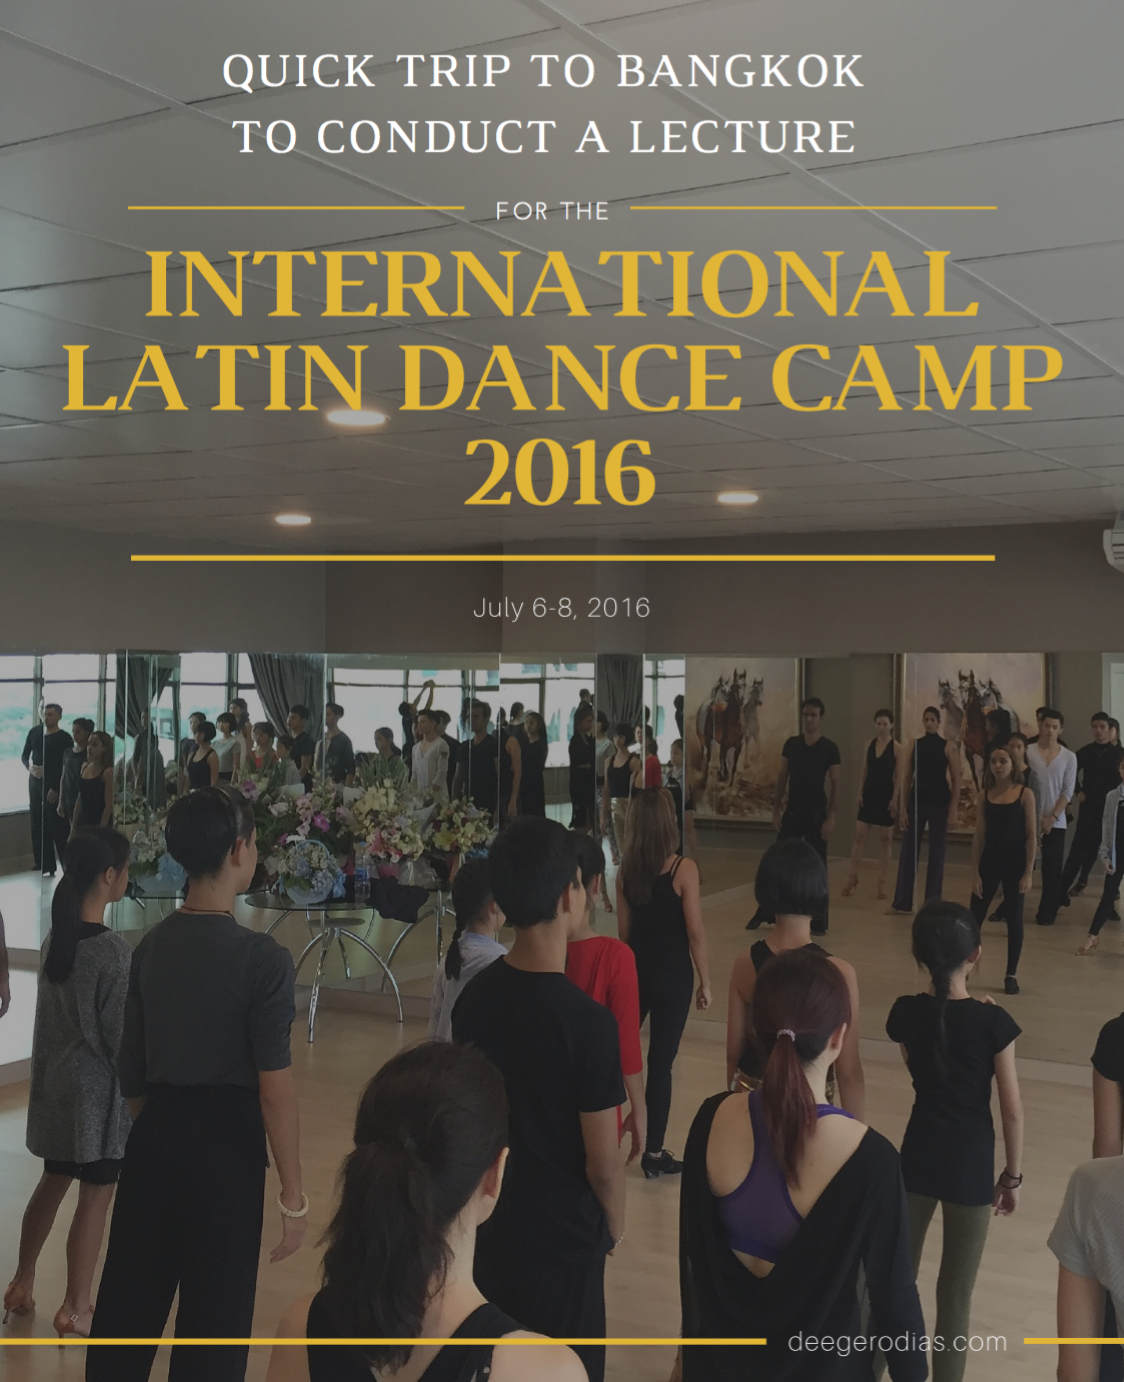 bangkok-international-latin-dance-camp